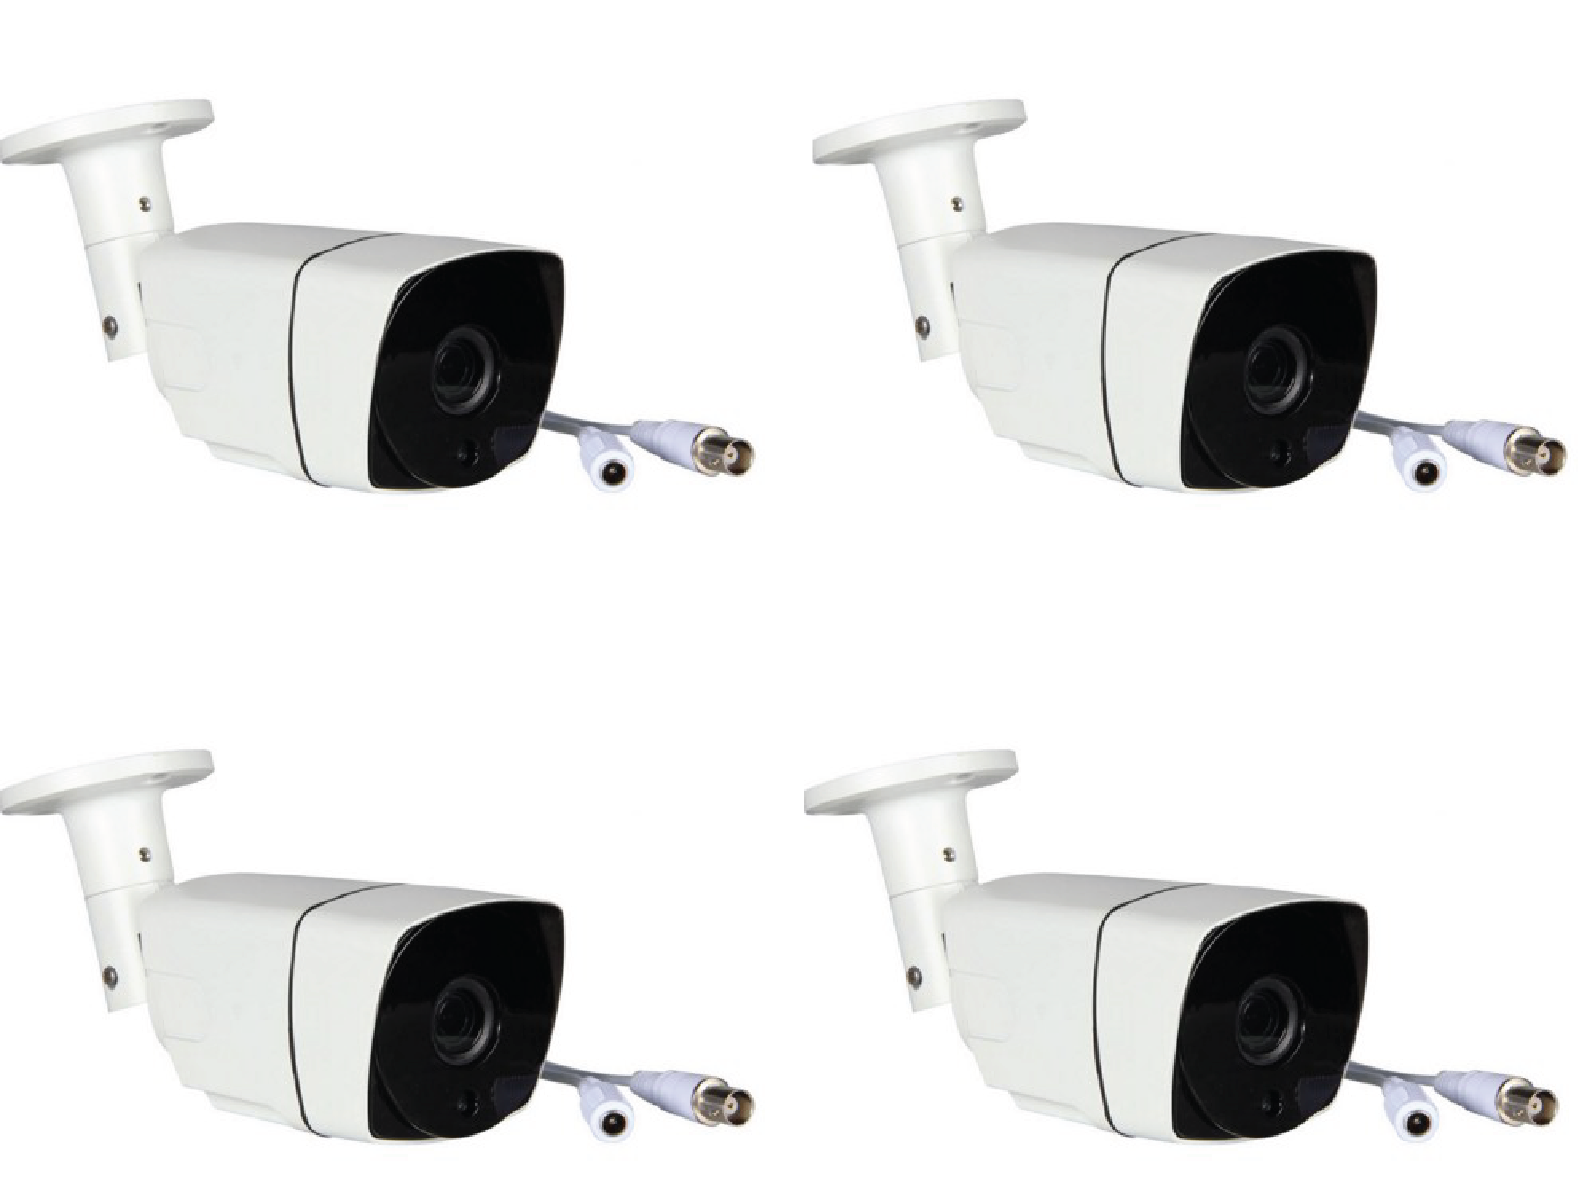 Our DIY CCTV Packages